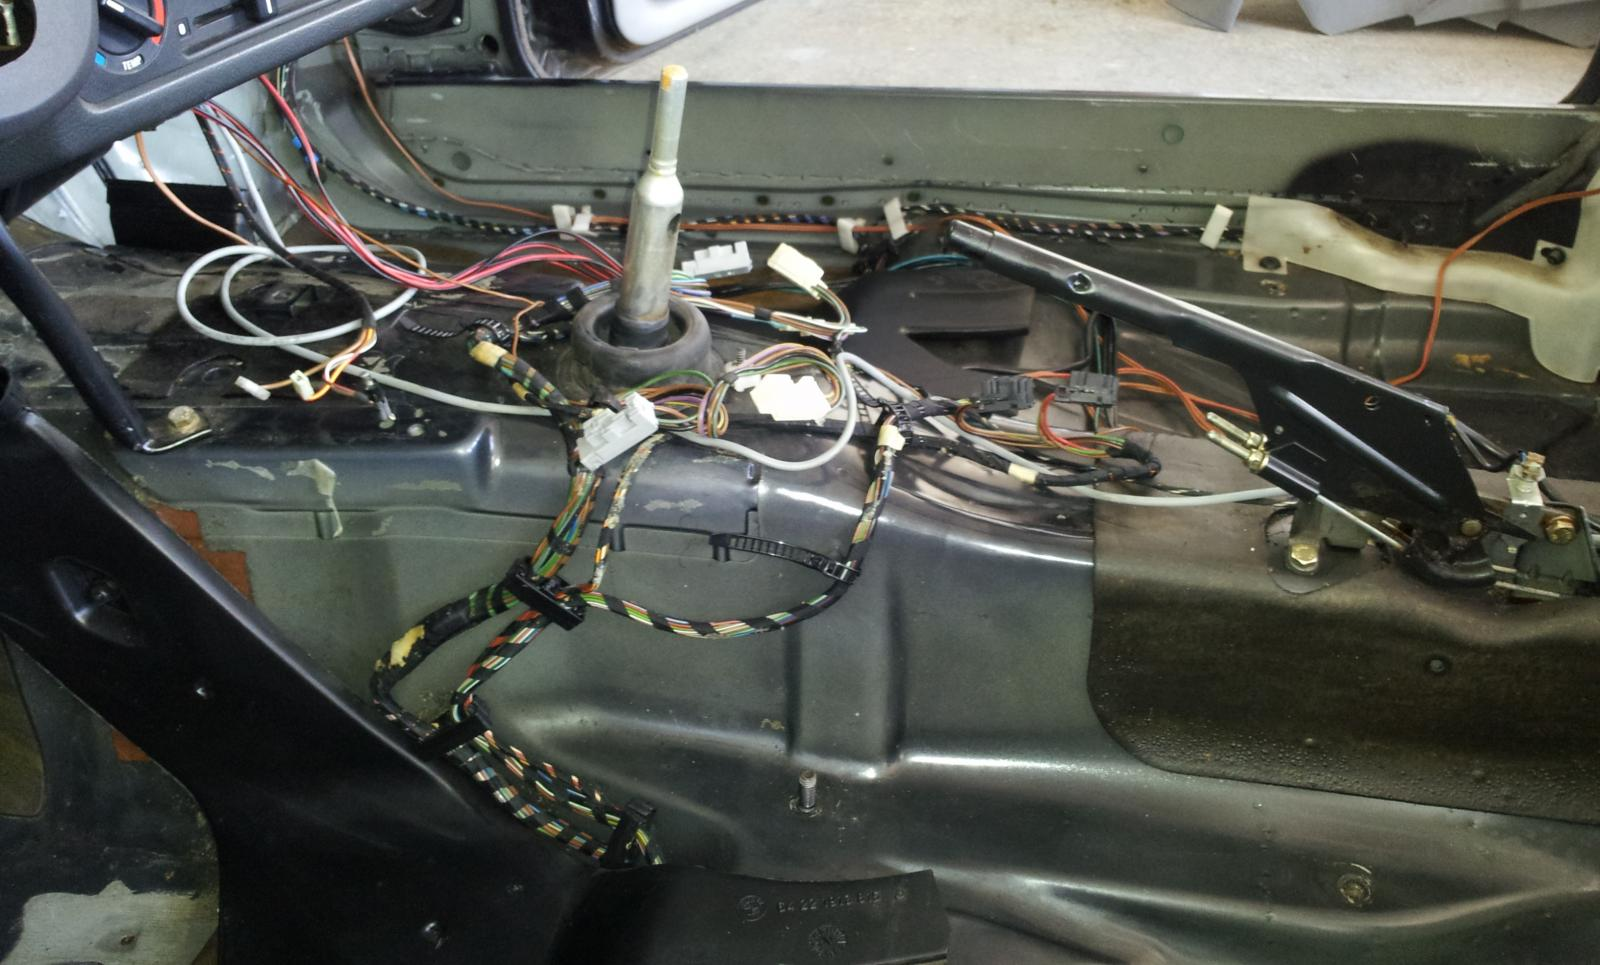 How To Install Heated Seat Wiring Kit From A E30 R3vlimited Forums Harness Connector Over Trans And Towards Passanger Side In Front Of Rails